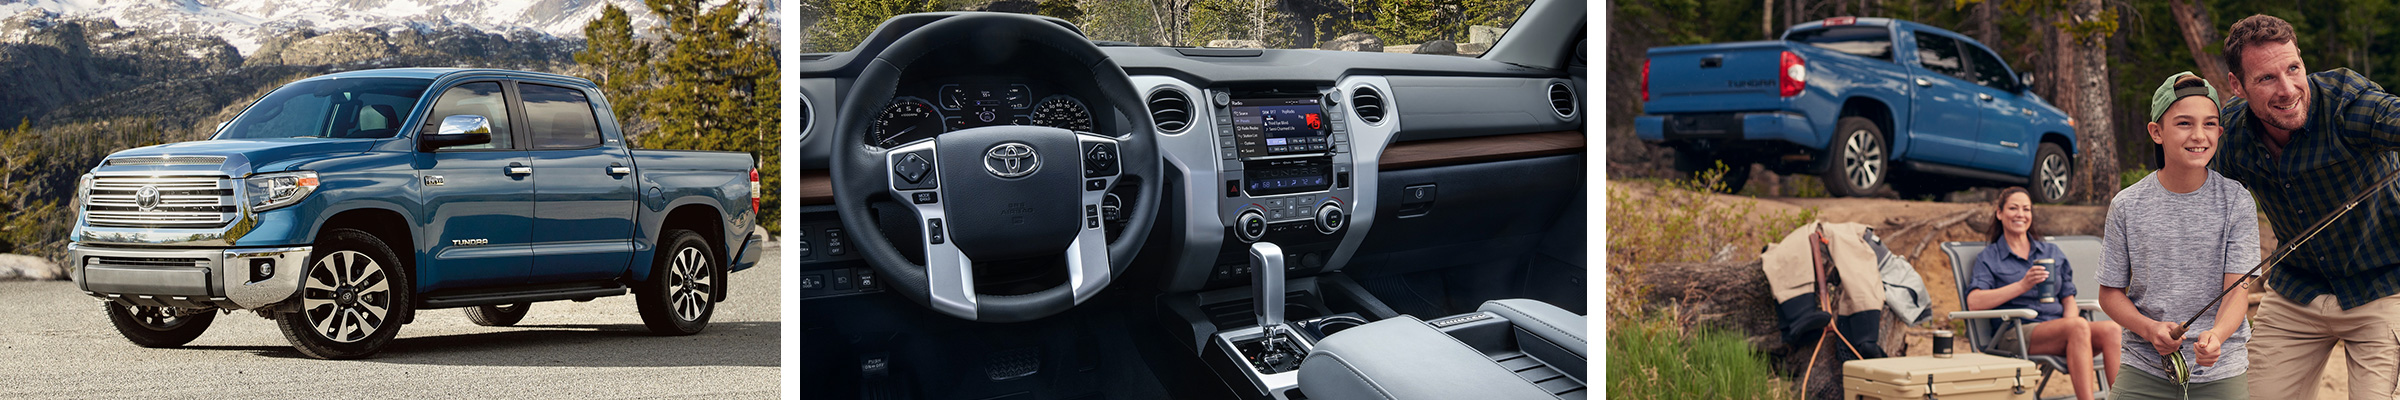 2021 Toyota Tundra For Sale Fox Lake IL | Crystal Lake